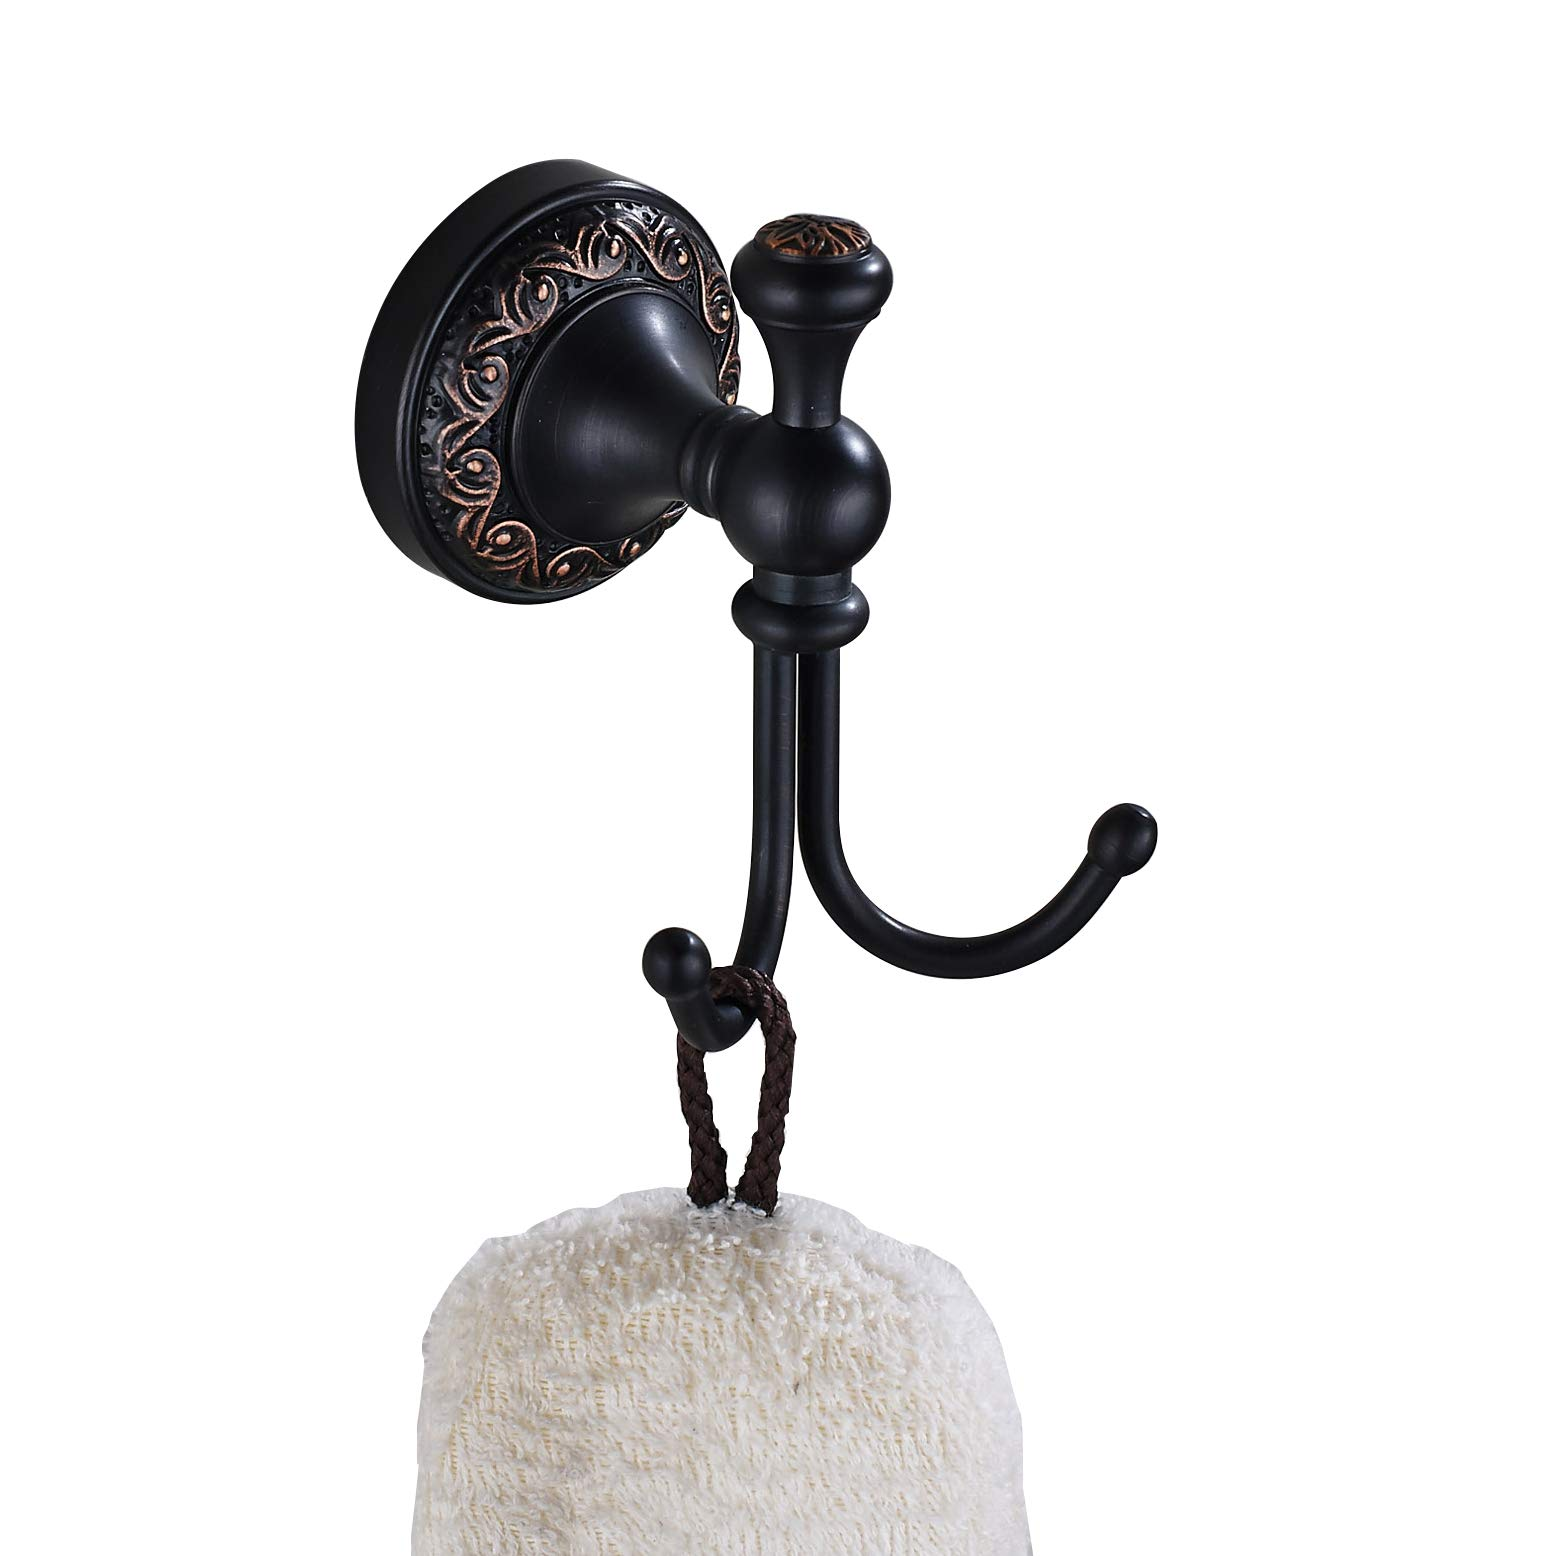 Rozin Wall Mounted Bath Towel Hook Clothes Robe Hanger Oil Rubbed Bronze by Rozin